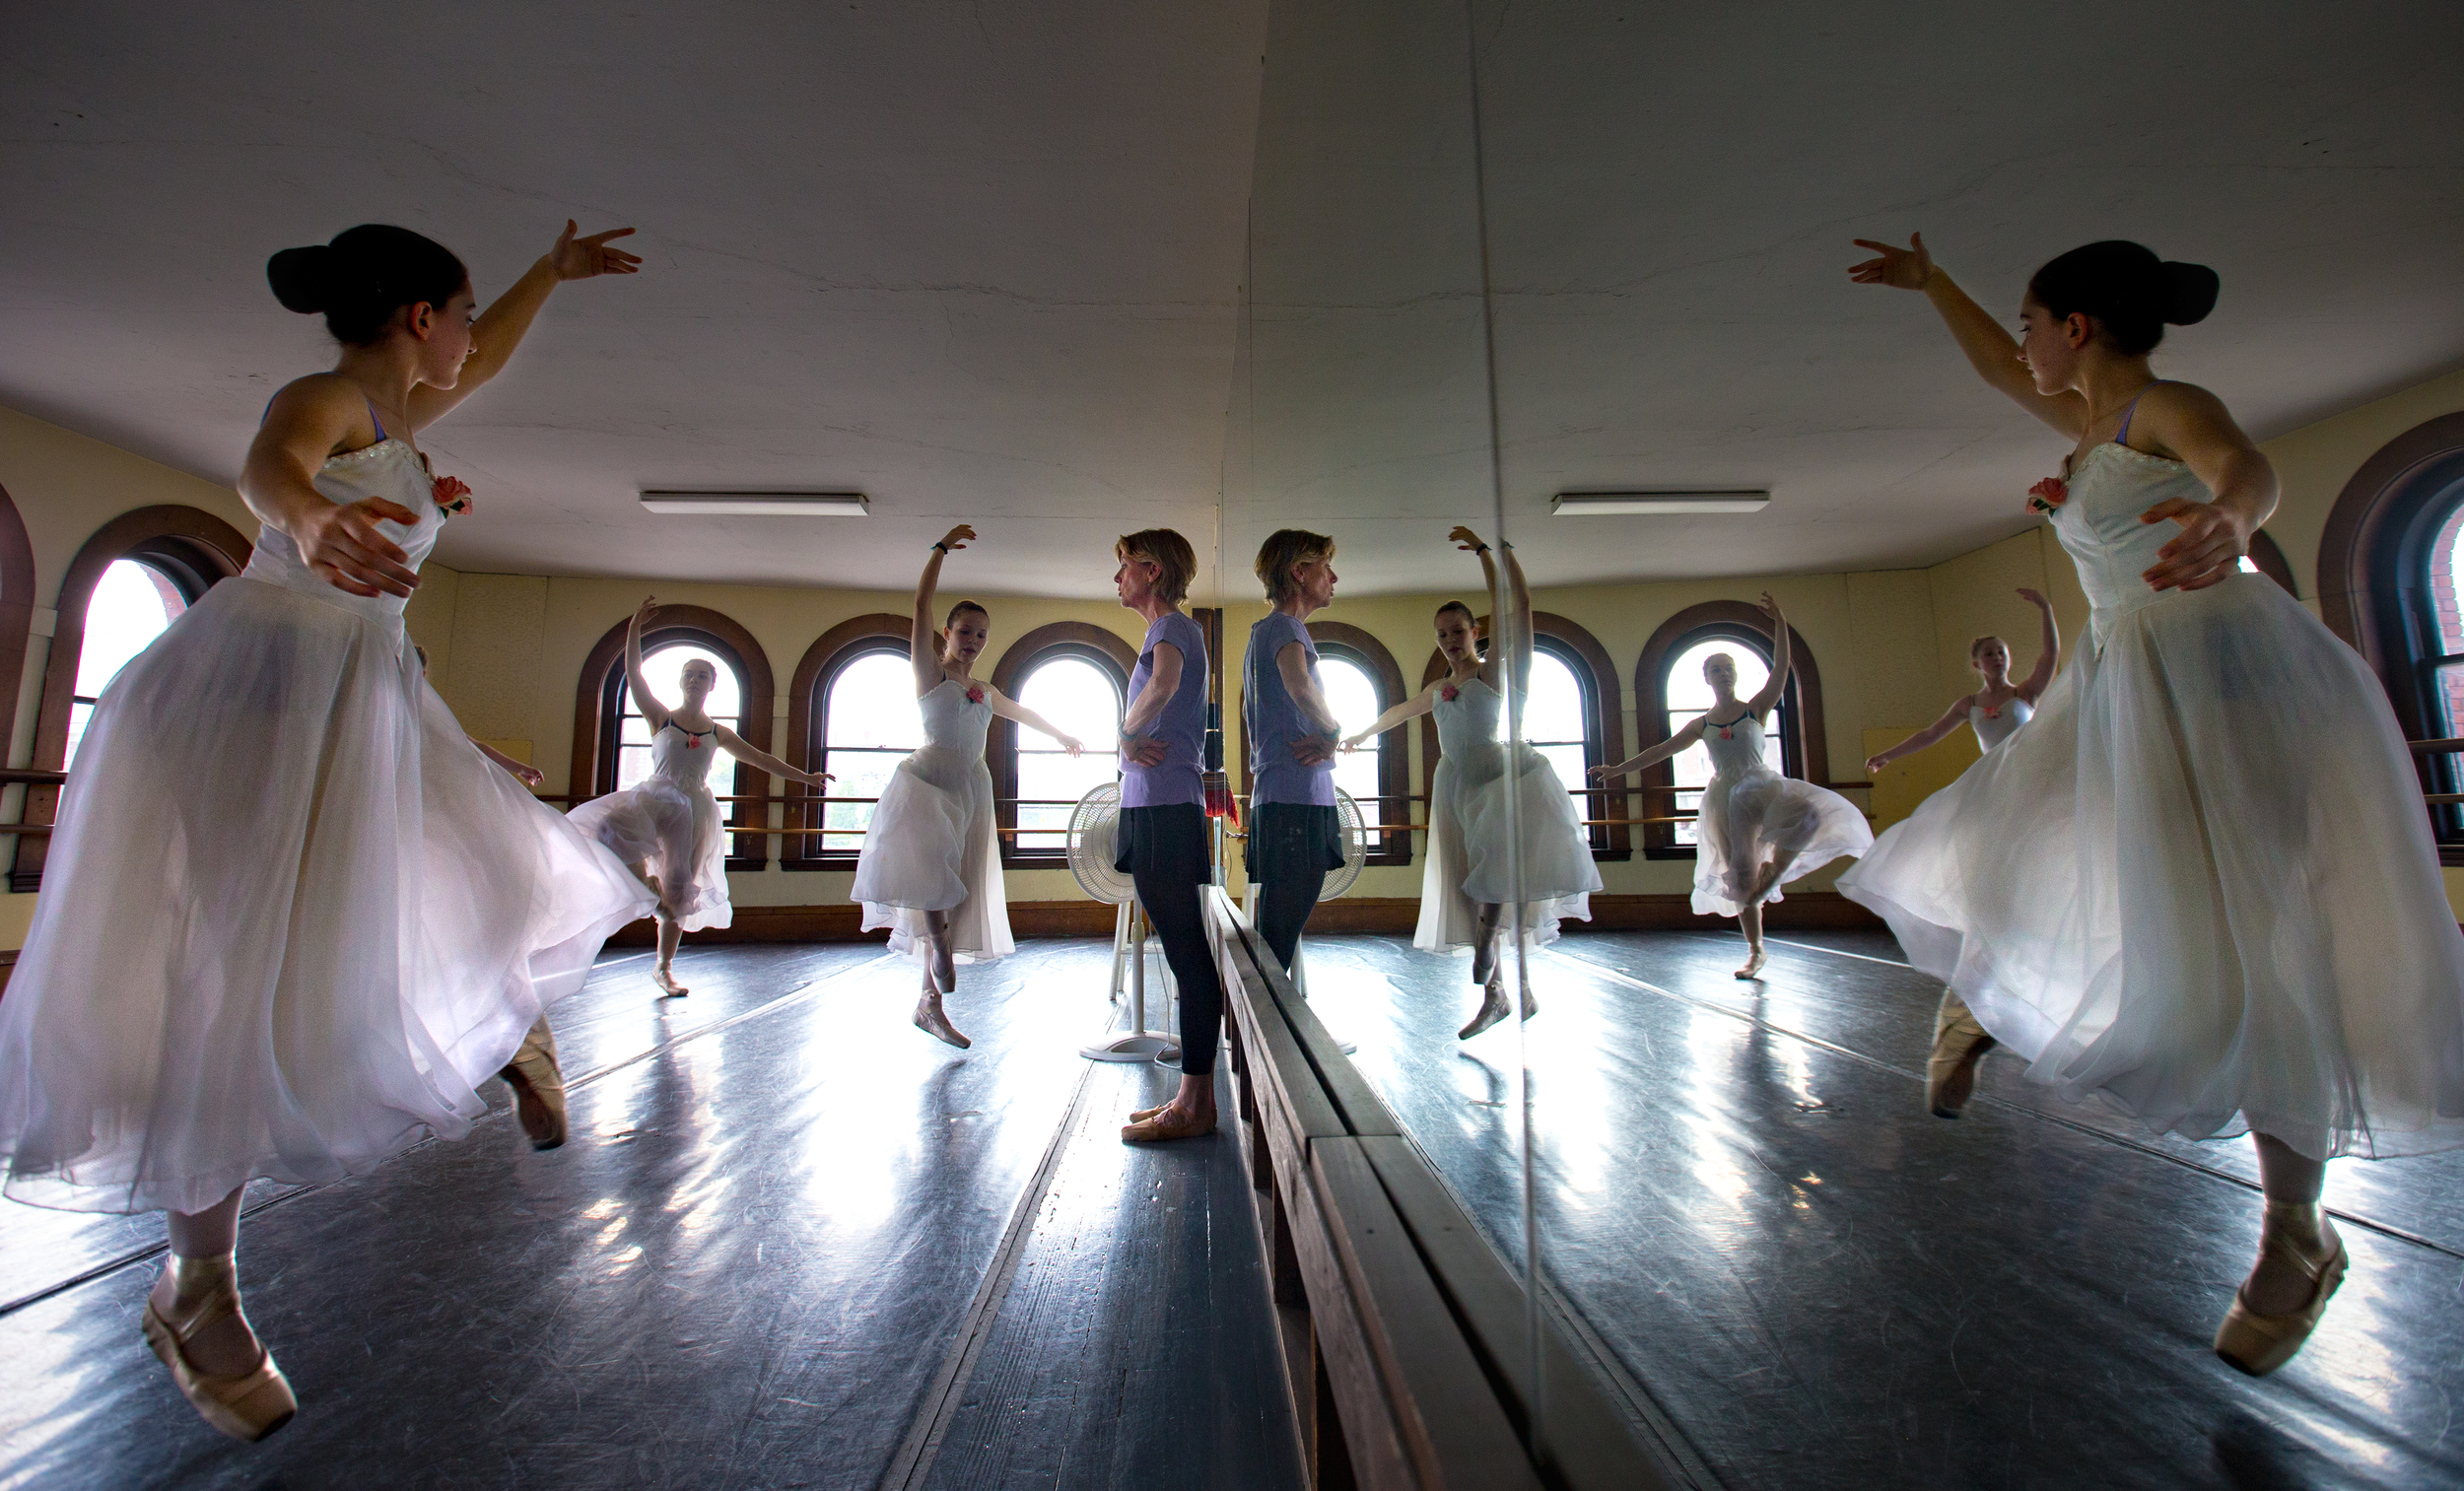 BANGOR, MAINE -- 05/23/2016 -- Maureen Robinson (center) watches some of her ballet students practice an en pointe routine at Robinson Ballet in Bangor on Monday. Maureen and her husband, Keith Robinson, have stepped down from their positions as co-artistic directors of Robinson Ballet in Bangor. For the first time since the company's inception in 1977, there will not be a Robinson at the helm. (Micky Bedell   BDN)